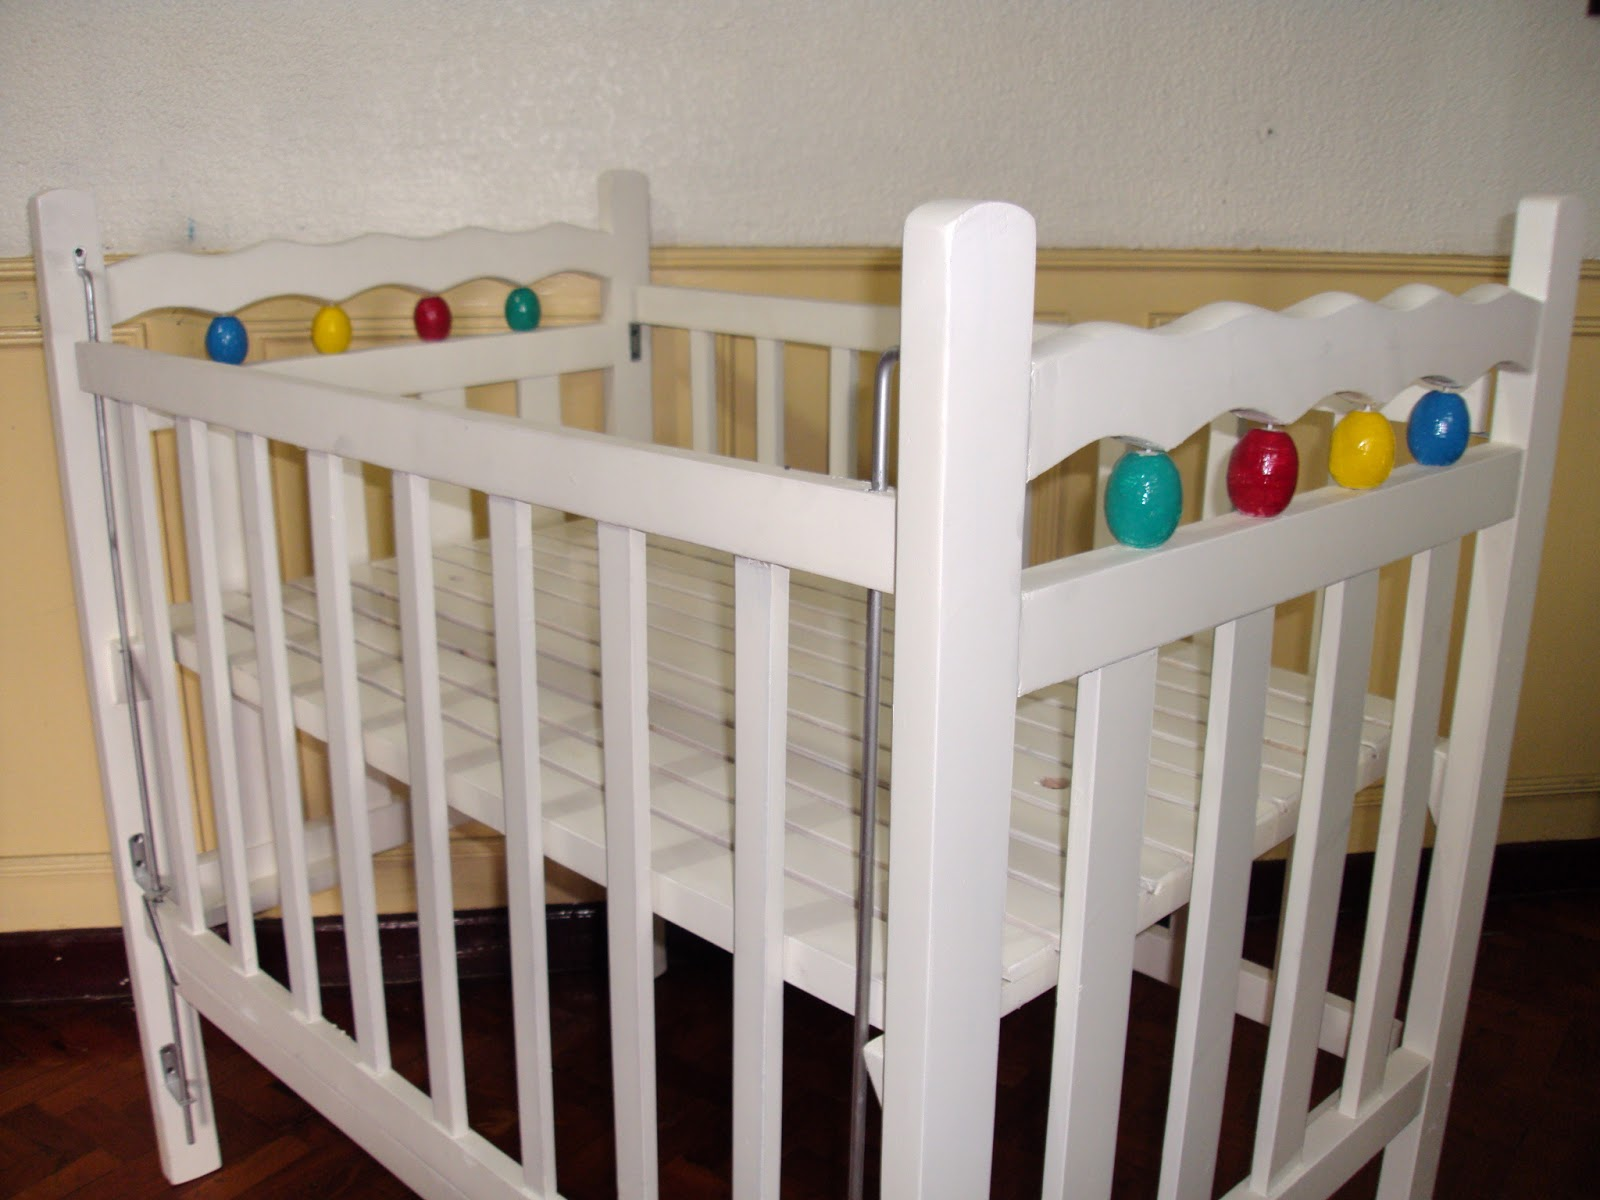 Gocrib adventure crib for sale - Gocrib Adventure Crib For Sale 7